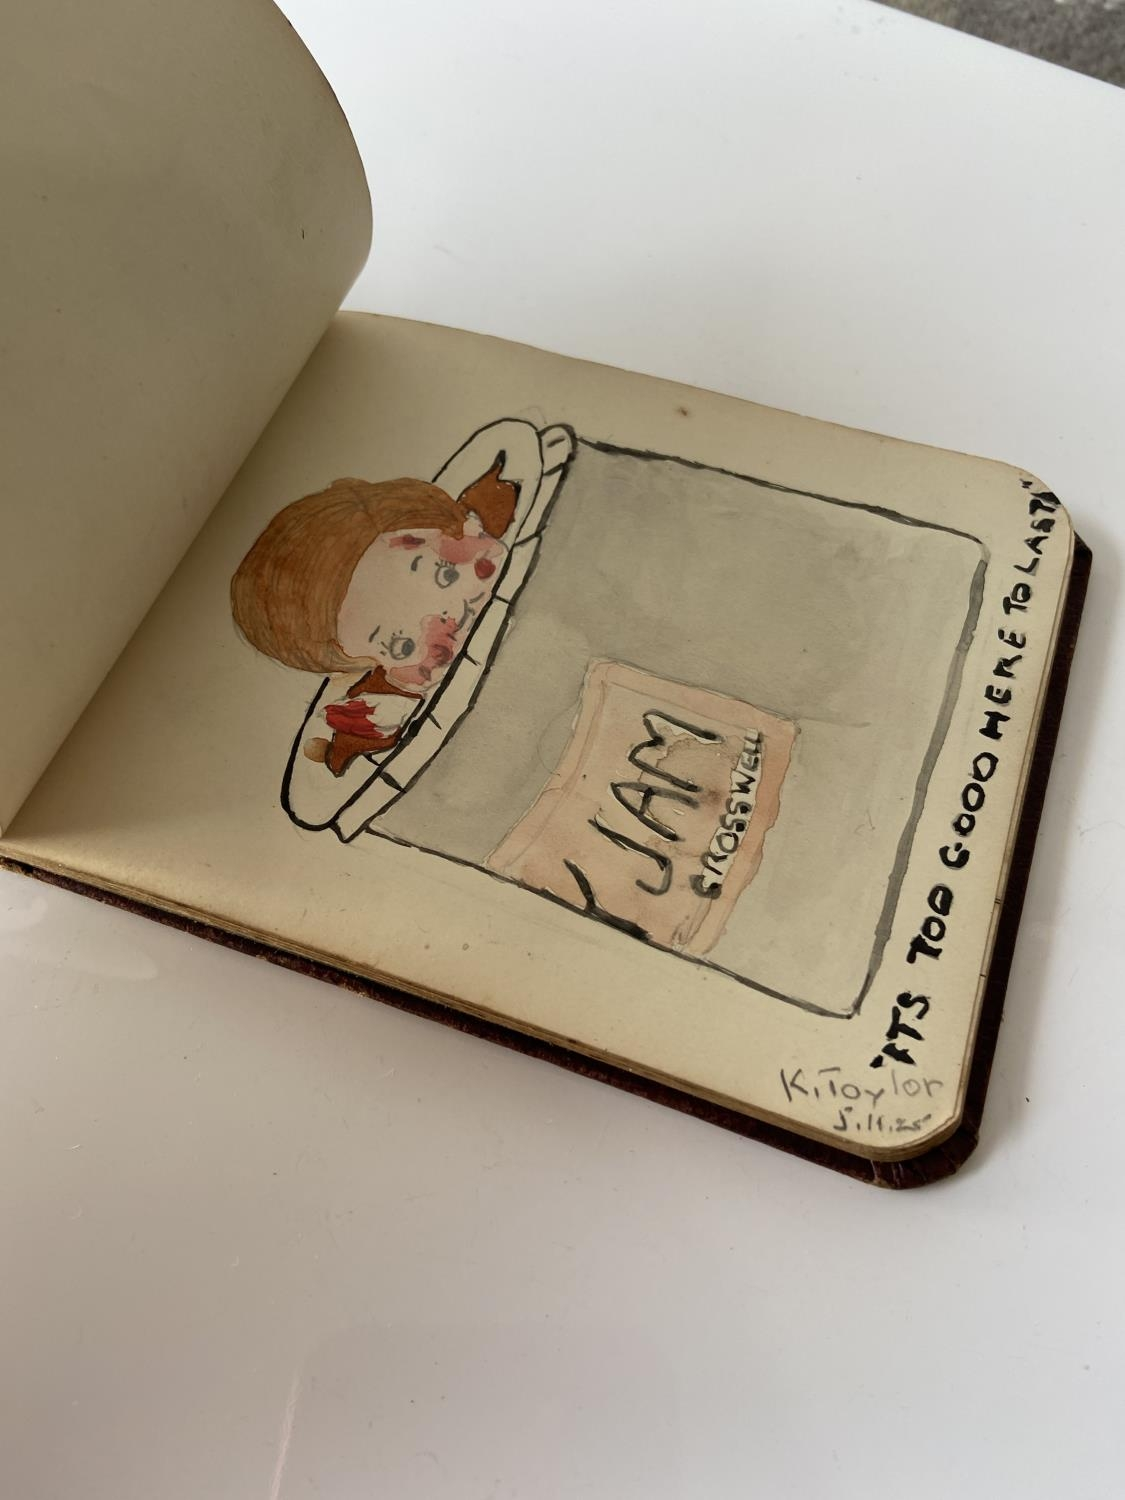 An old autograph album containing various poems, sayings & doodles - Image 9 of 18